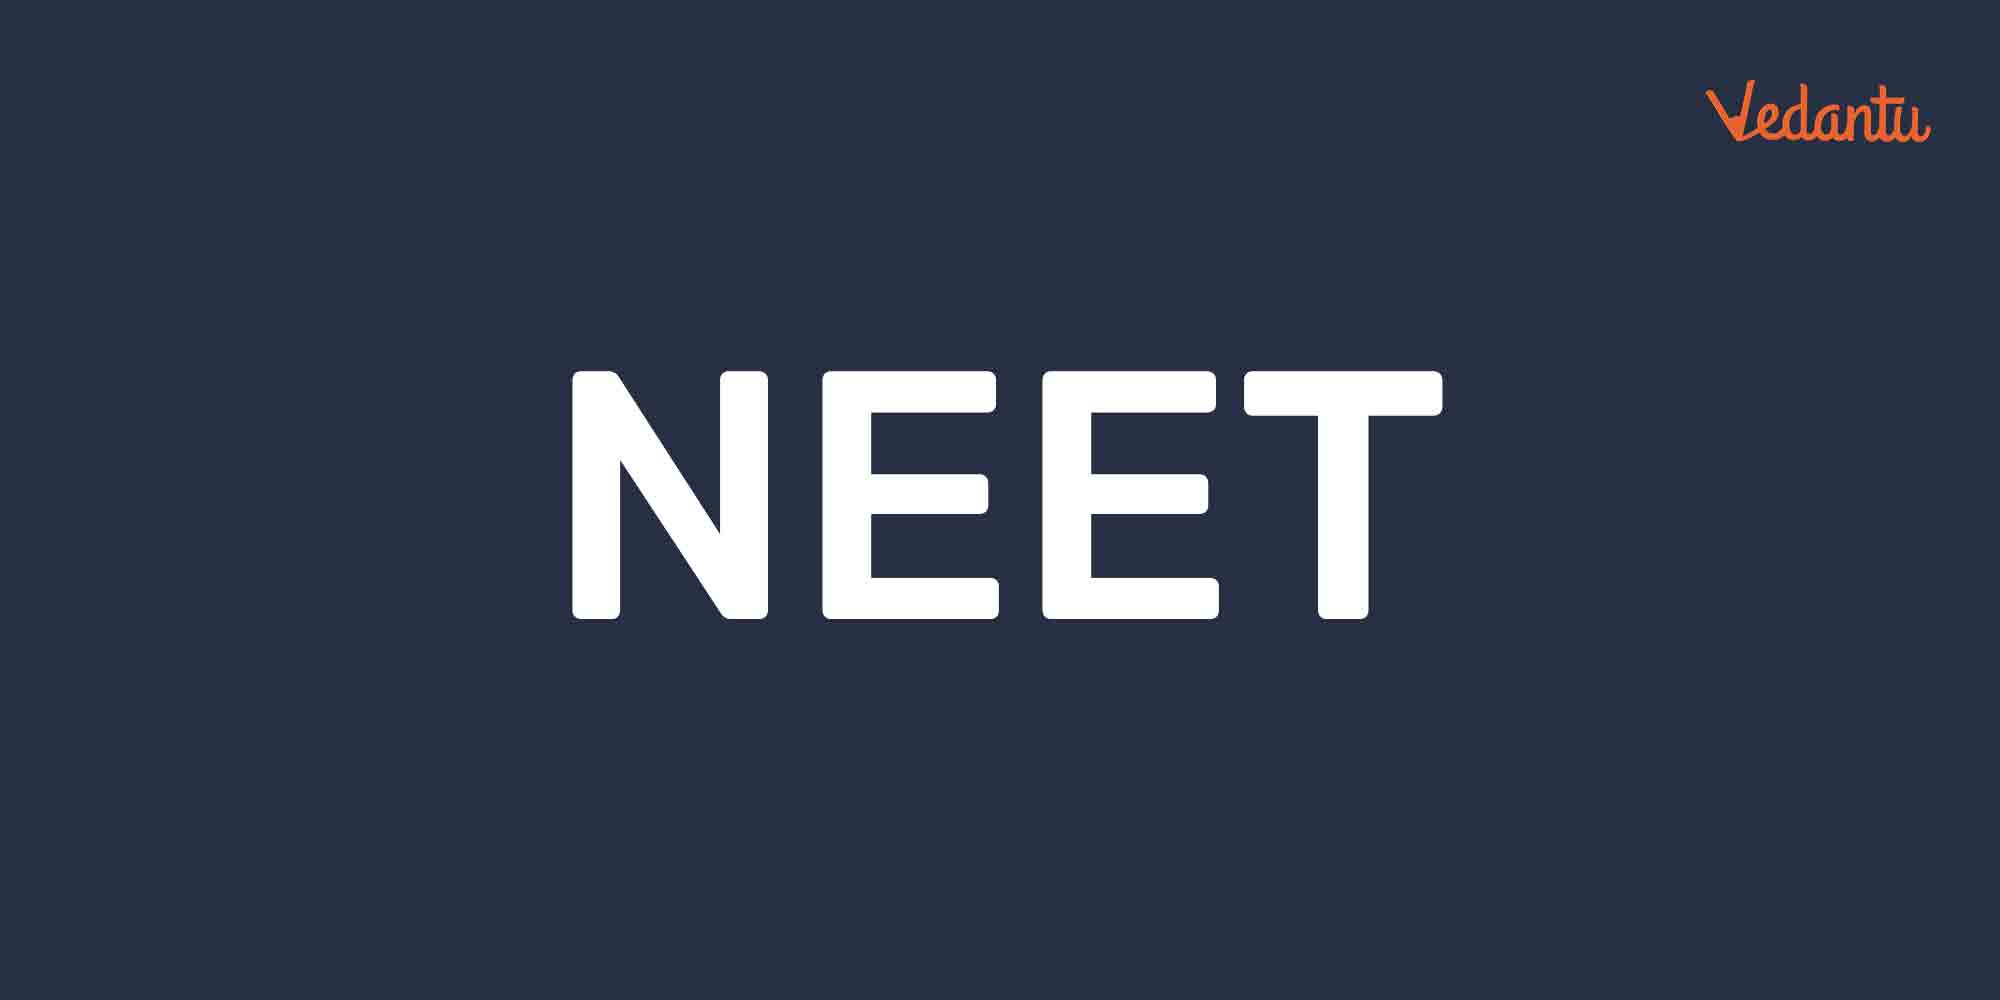 How to Prepare for NEET 2021 in 10 Days?